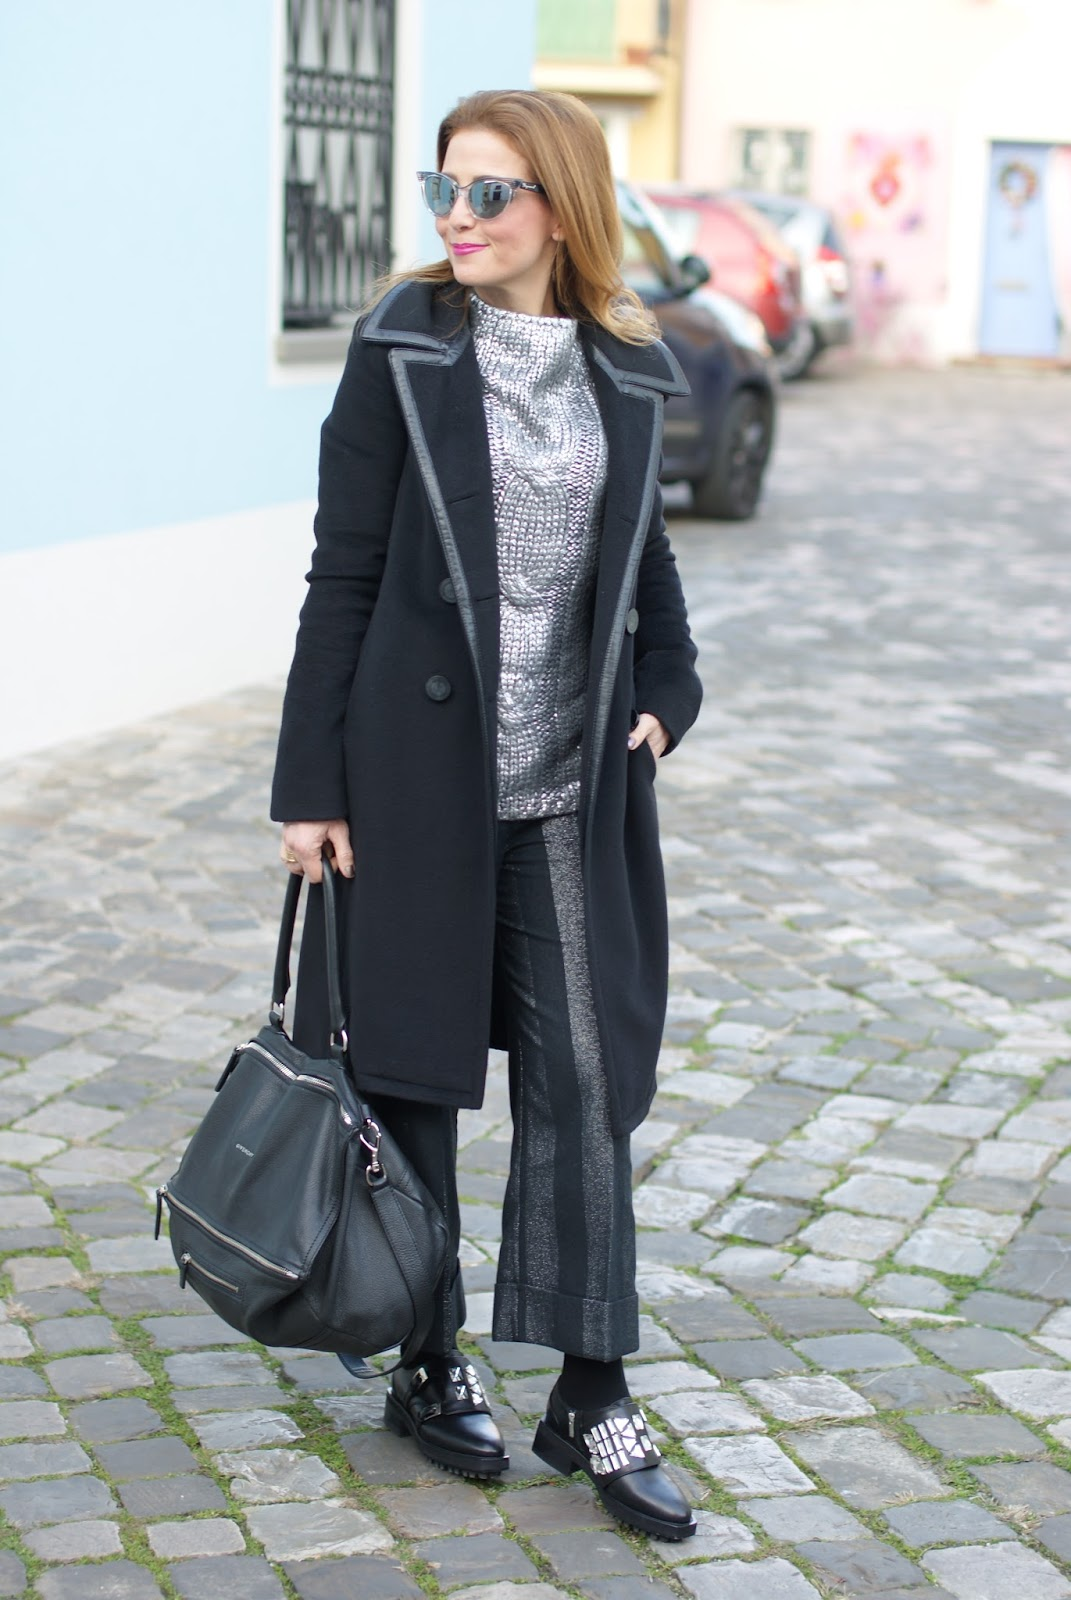 Balenciaga black coat with leather trim and Givenchy Pandora bag on Fashion and Cookies fashion blog, fashion blogger style